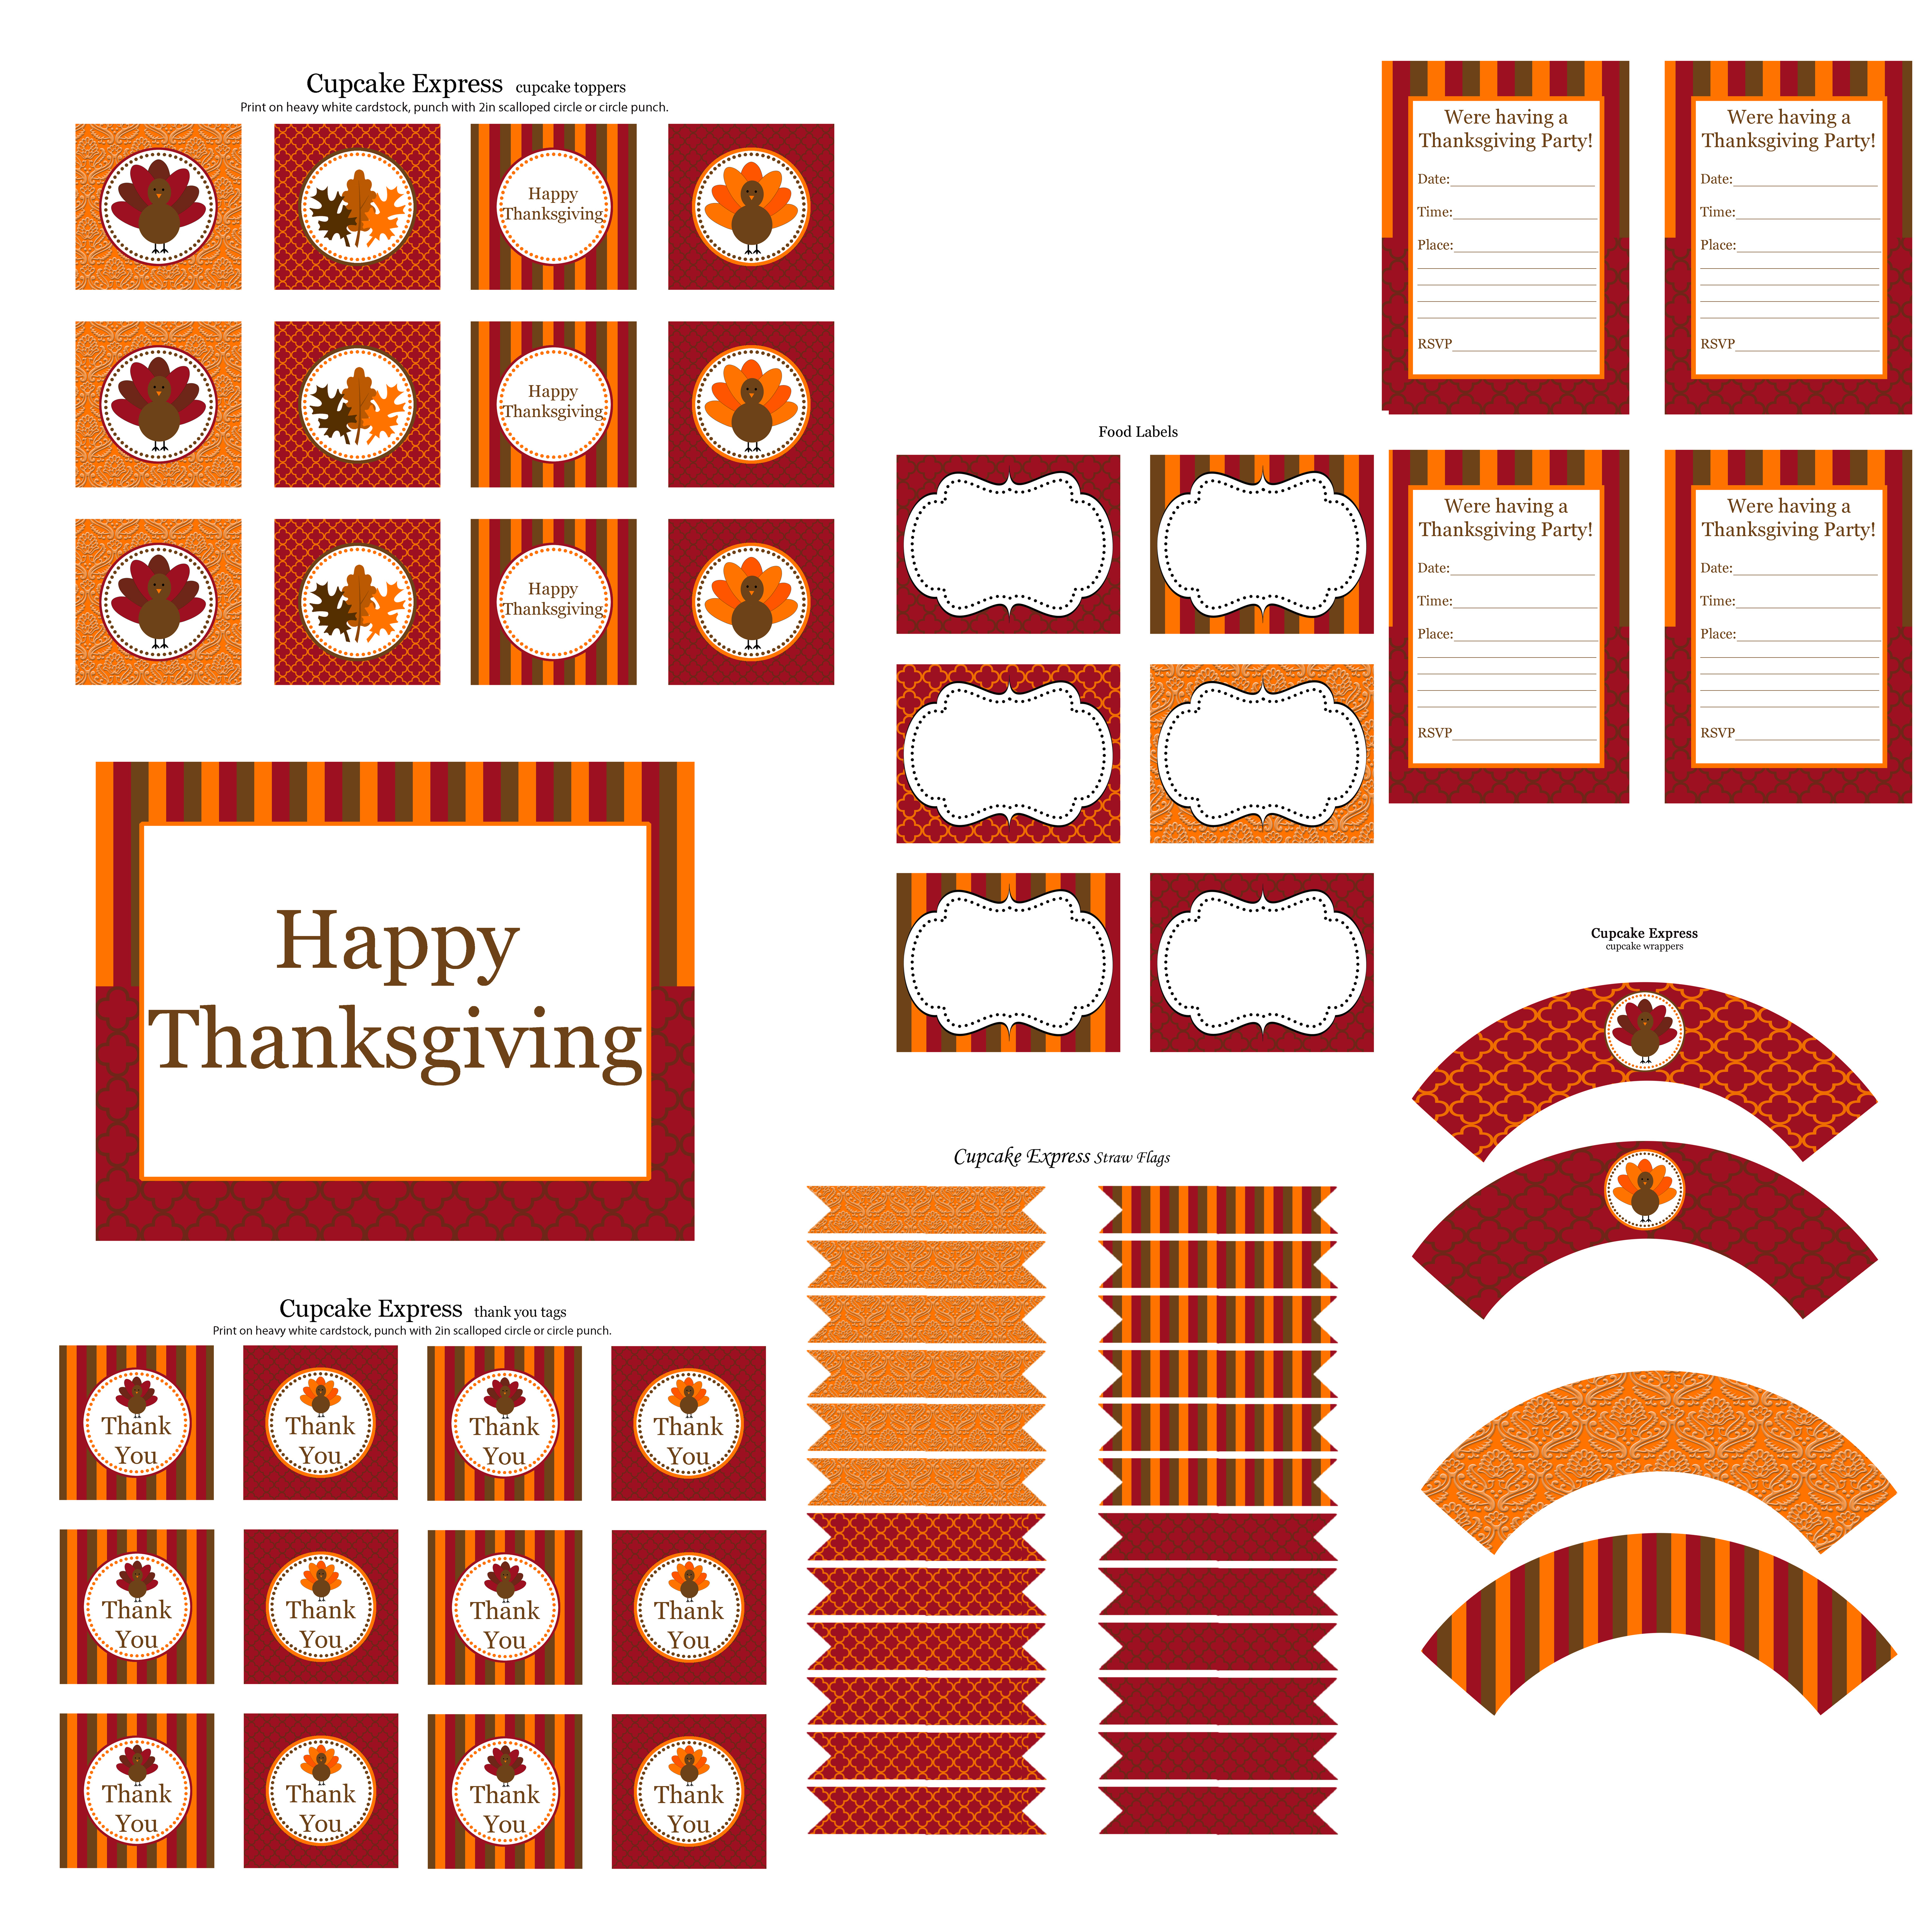 Free Thanksgiving Party Printables From Cupcake Express | Catch My Party - Thanksgiving Cupcake Toppers Printable Free